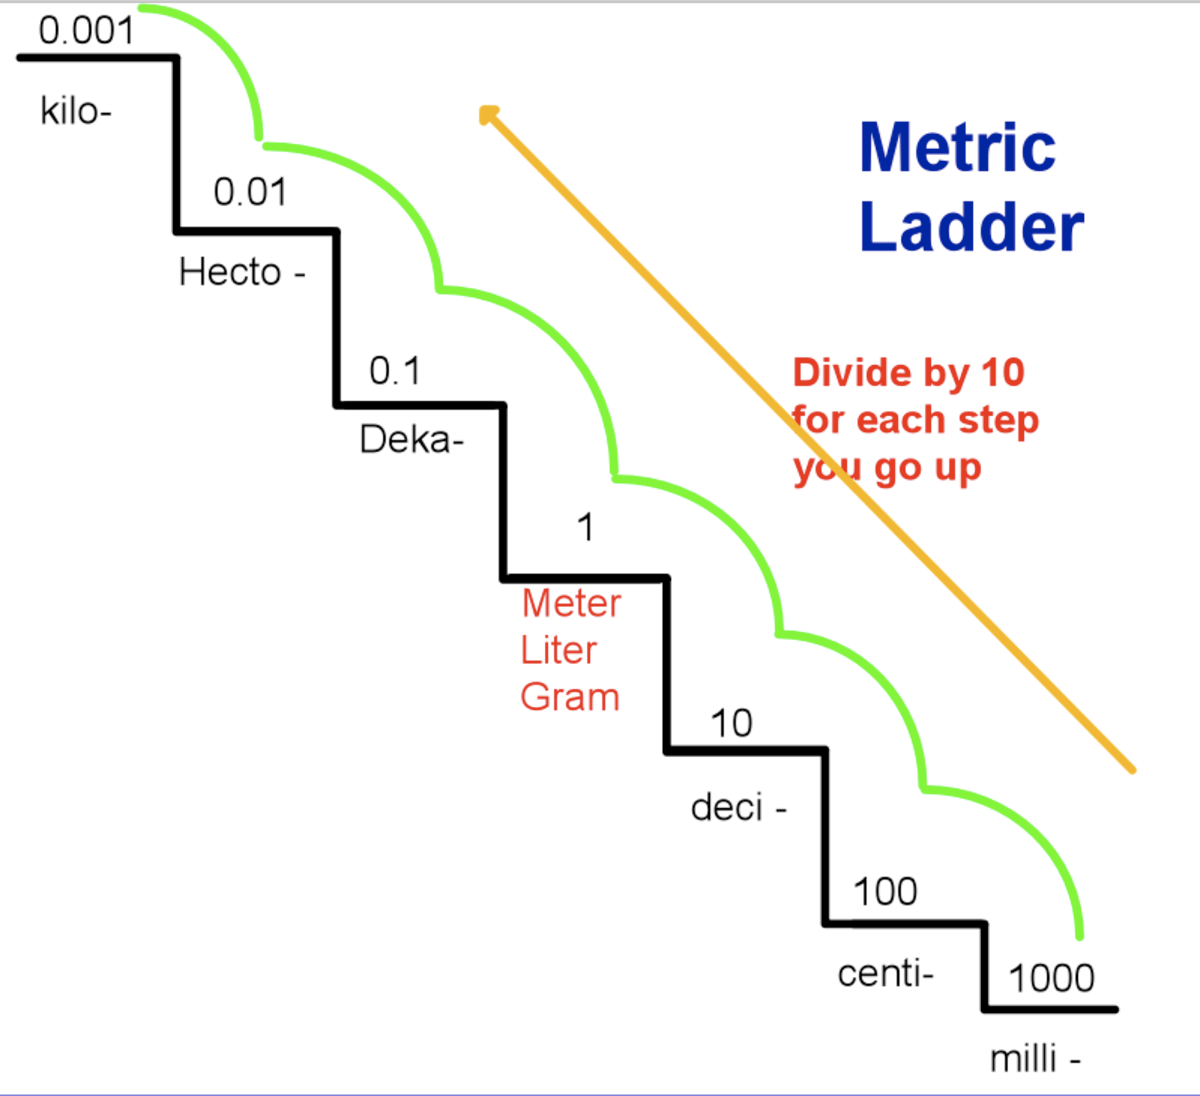 Converting Within The Metric System Using The Metric